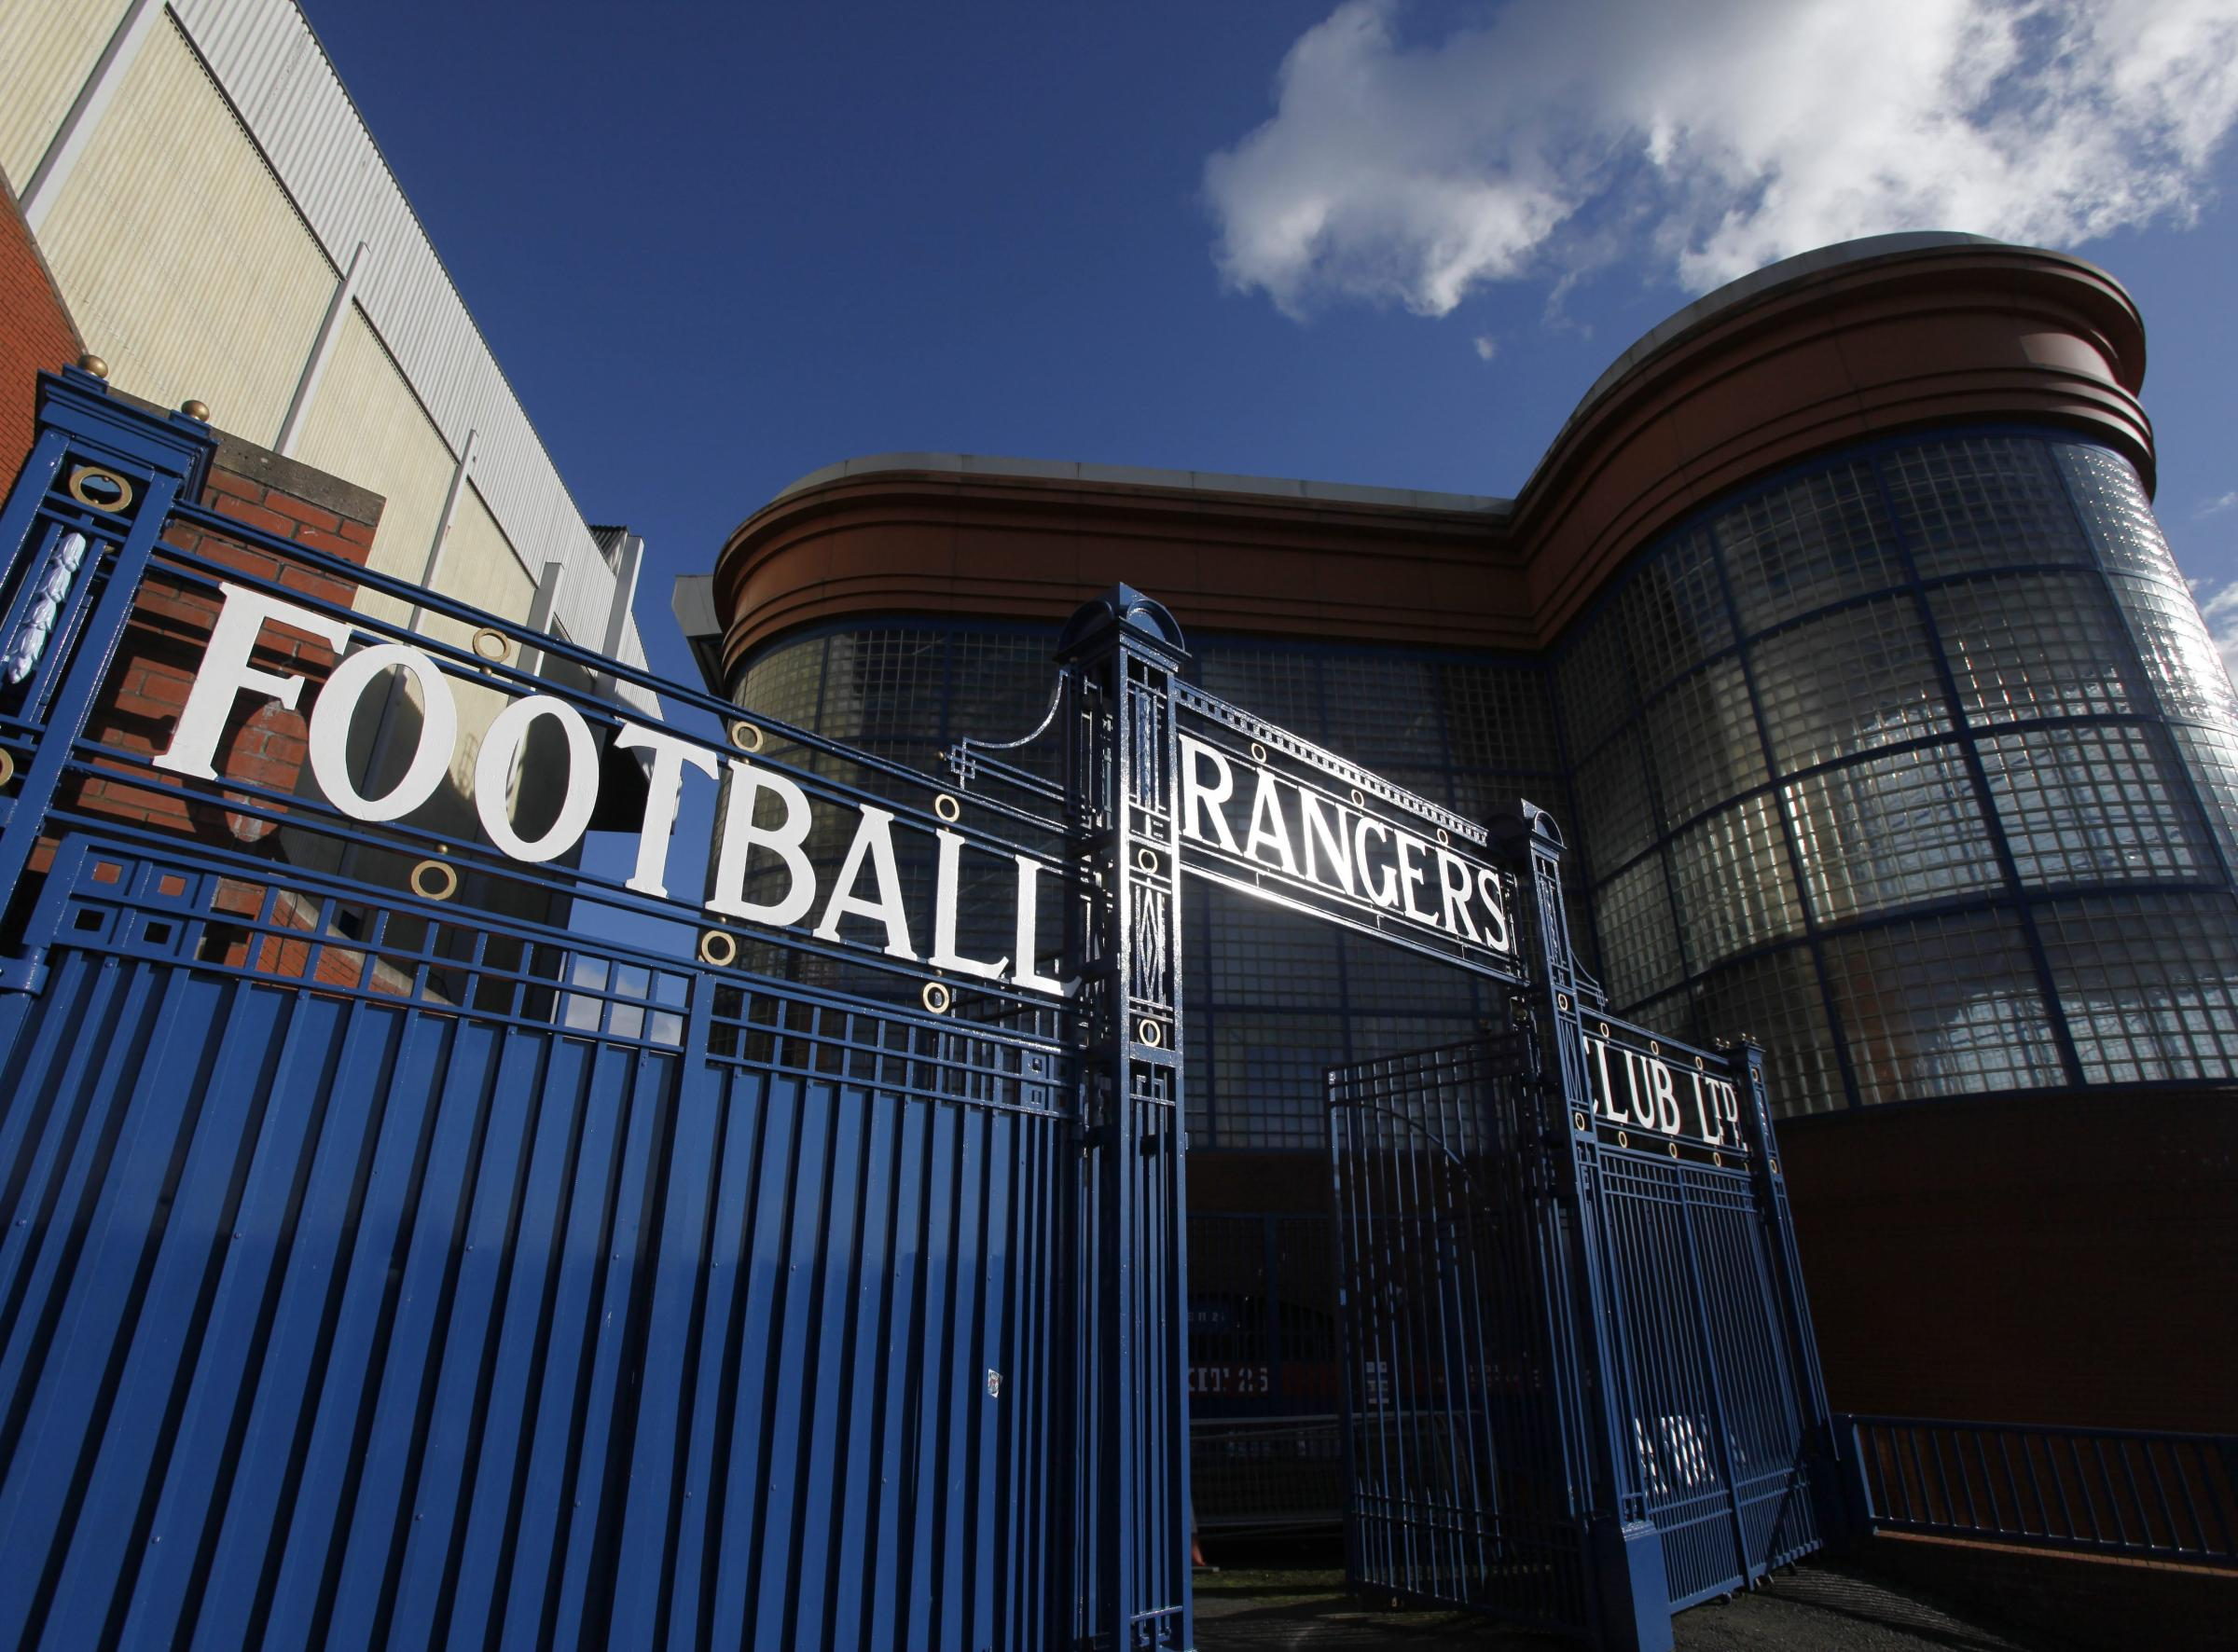 Rangers have received 'numerous applications' for manager's job but haven't interviewed any Ibrox candidates